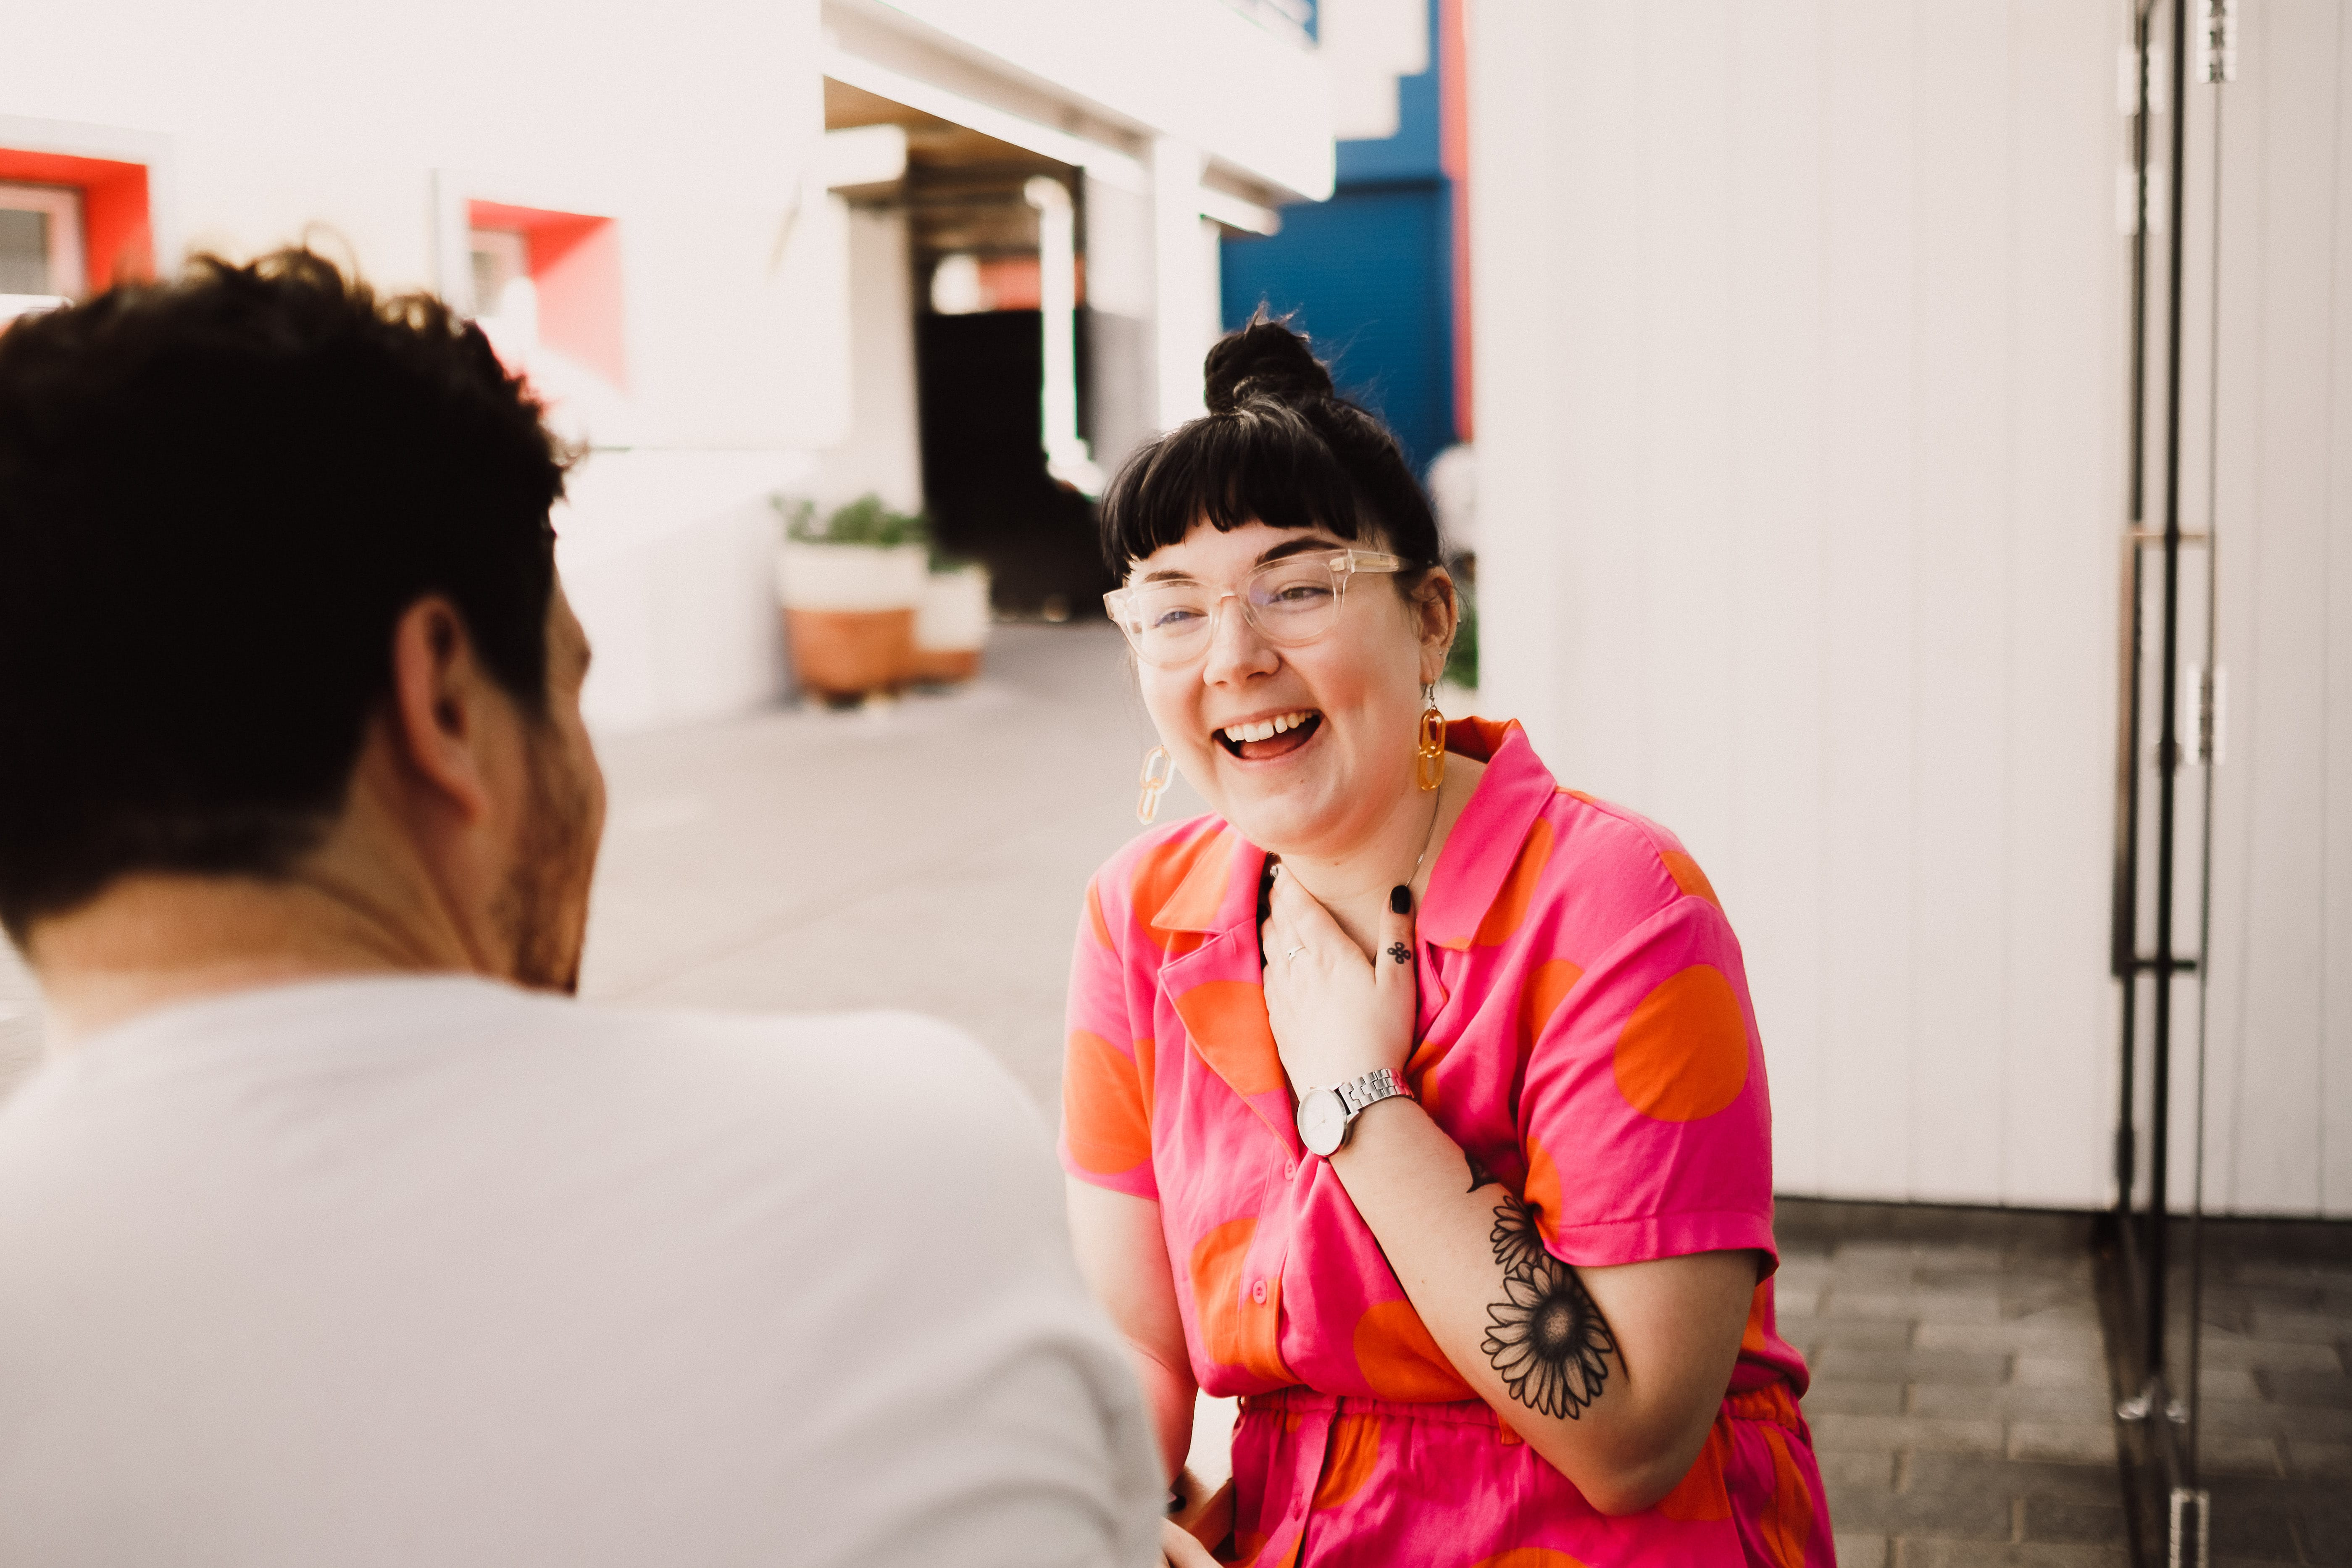 Hollie mid laugh facing the camera, sitting with a masculine looking person who looking at her out and of focus in the image. Hollie has dark hair, a full fringe and her hair up in a bun. The masculine person has on a white t'shirt and has dark hair and facial hair.